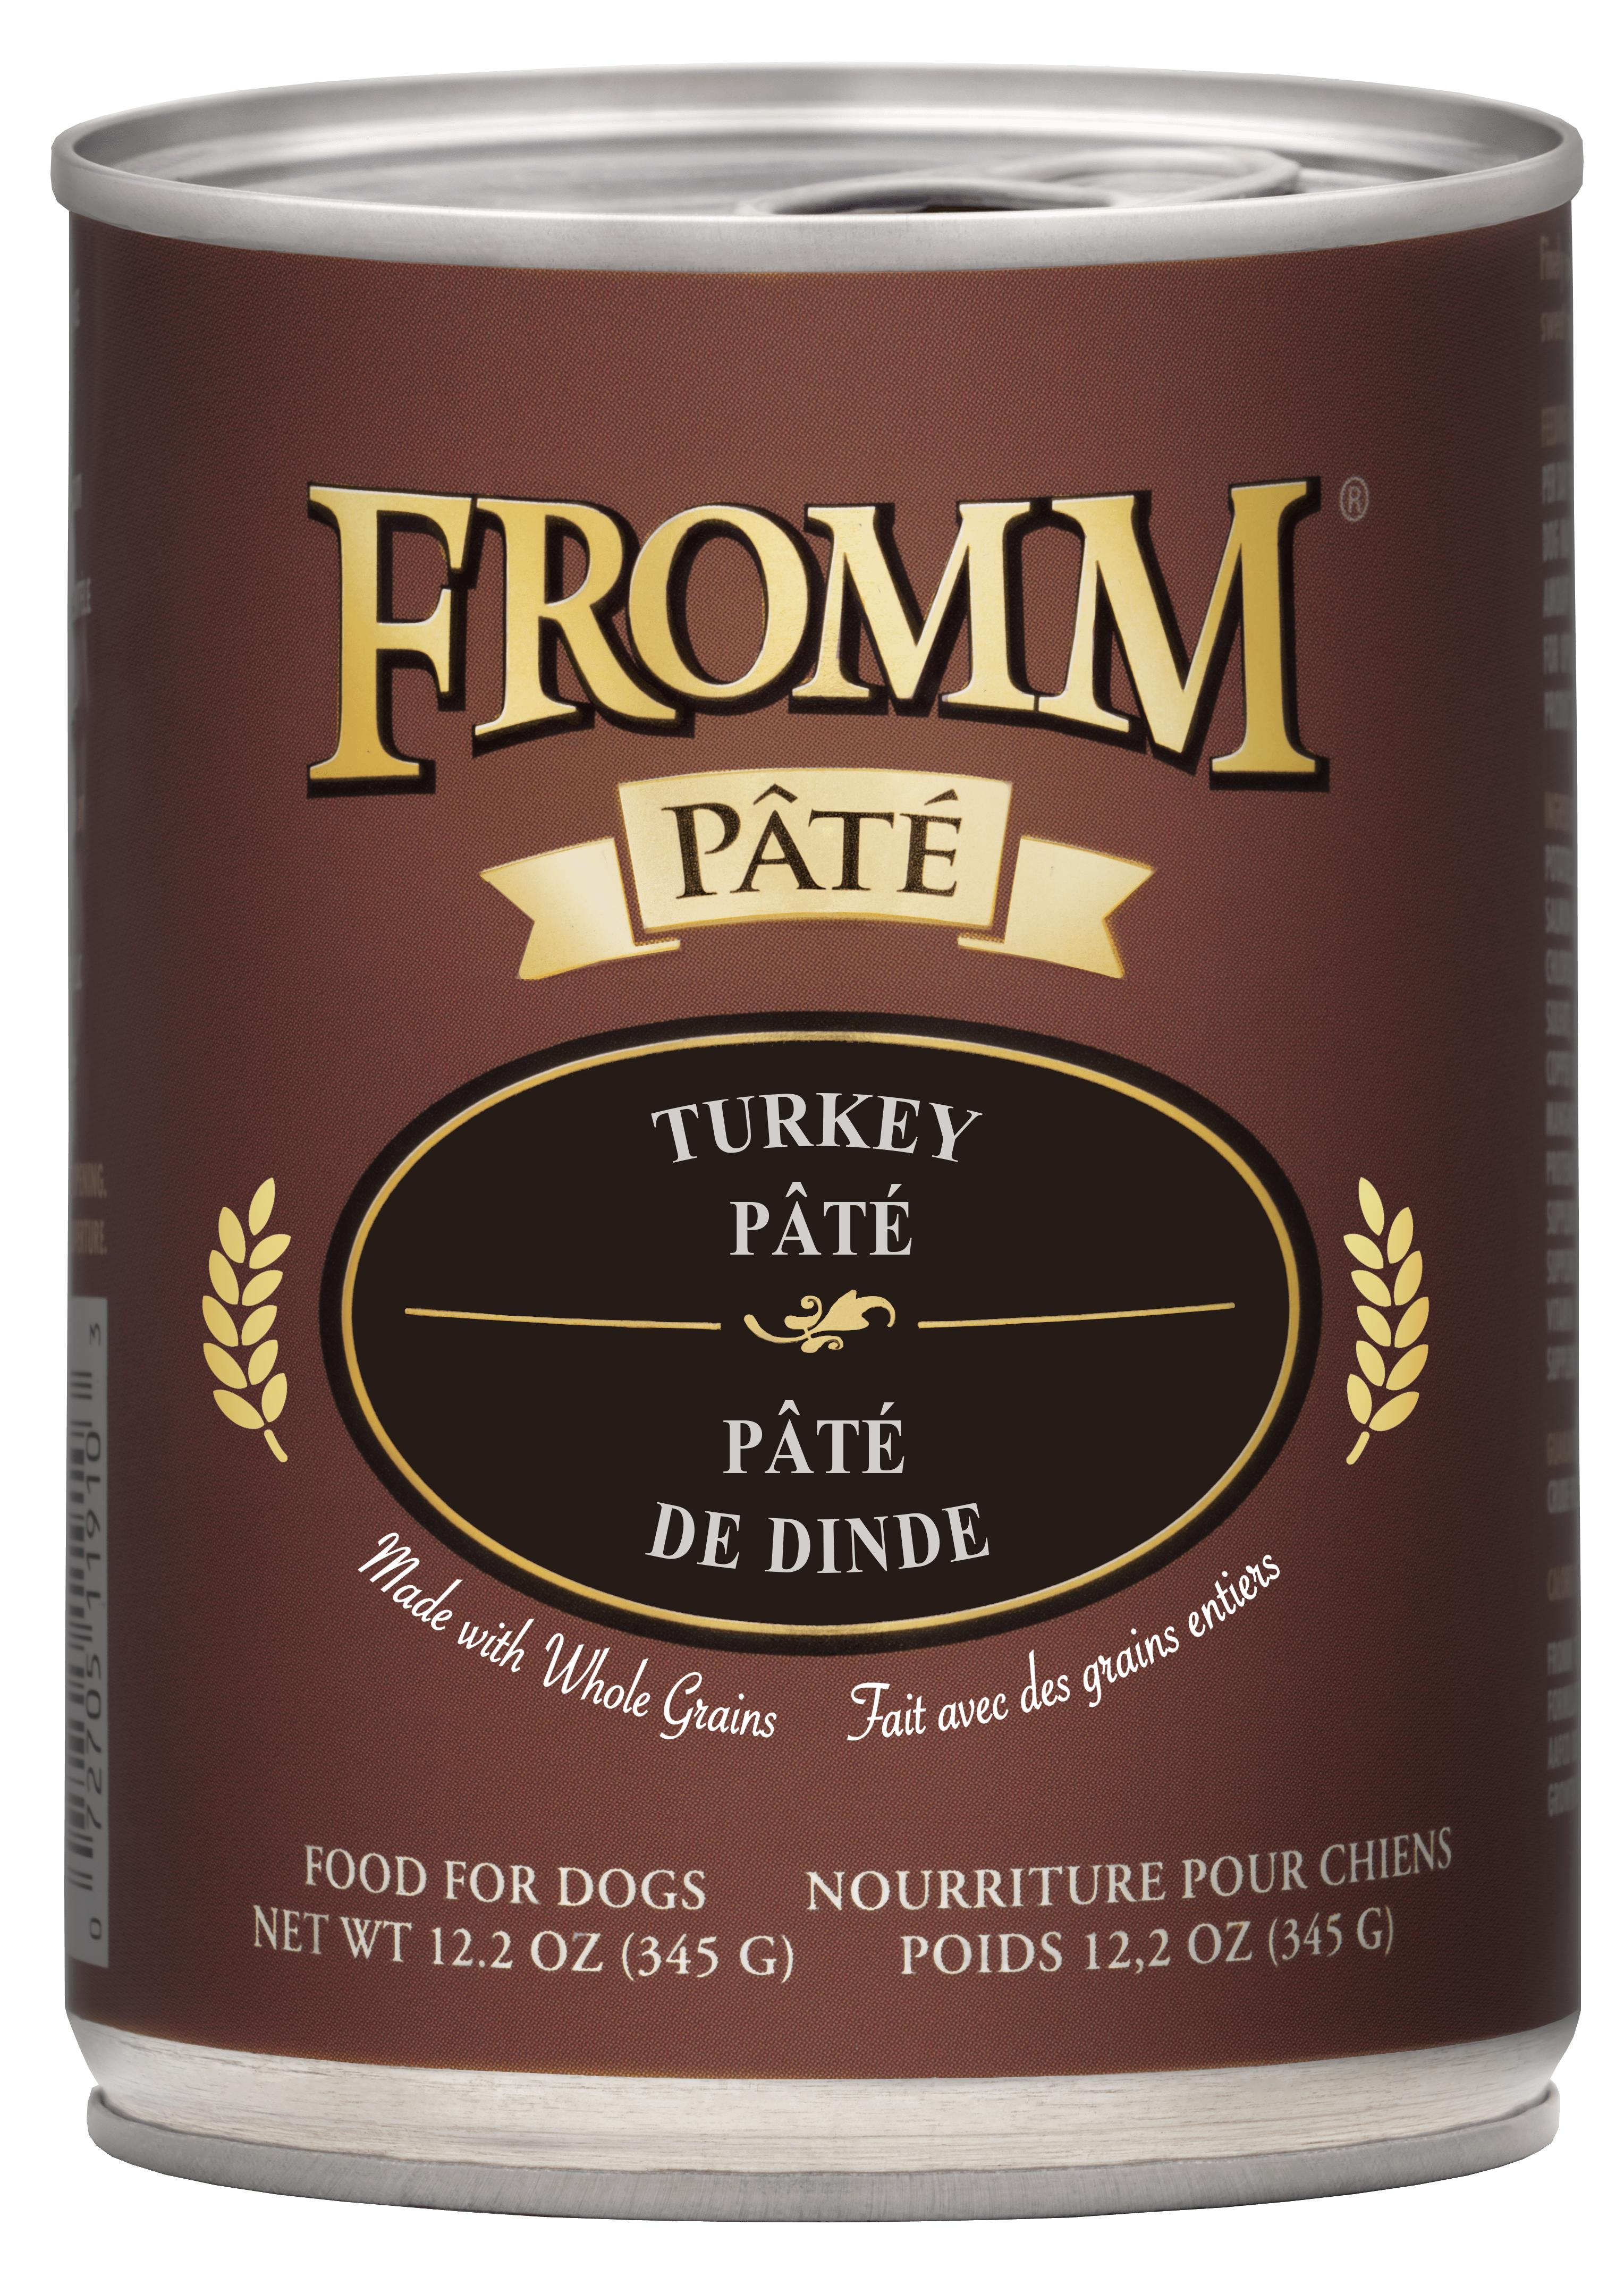 Fromm Turkey Pate Canned Dog Food, 12.2-oz